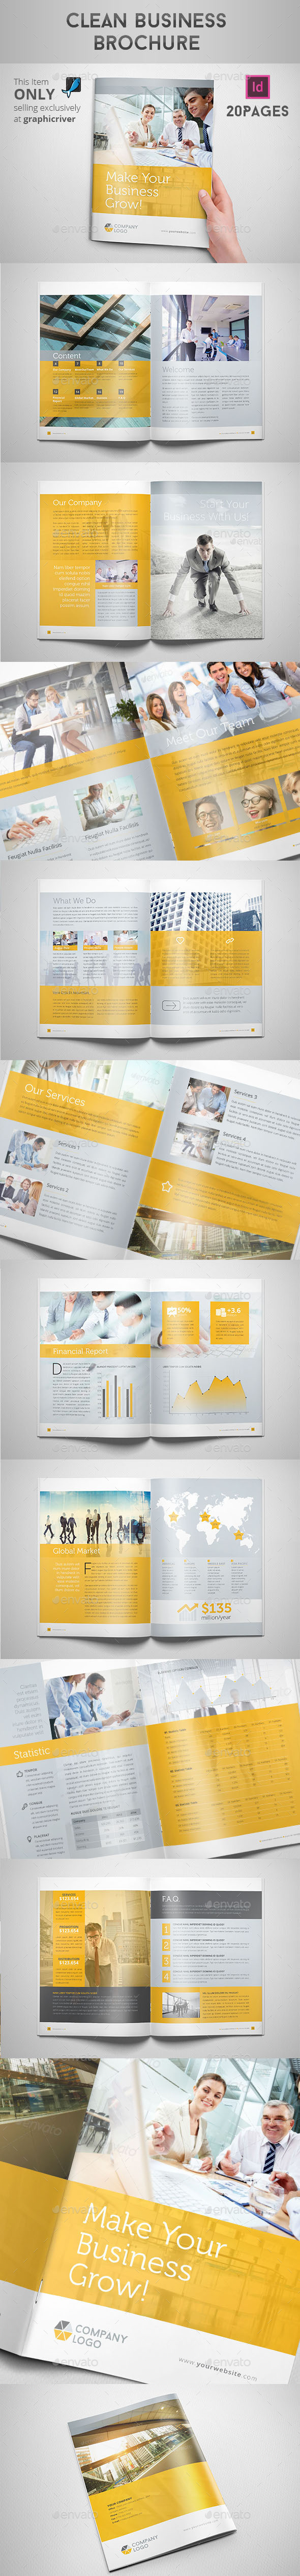 GraphicRiver Clean Business Brochure 9267591